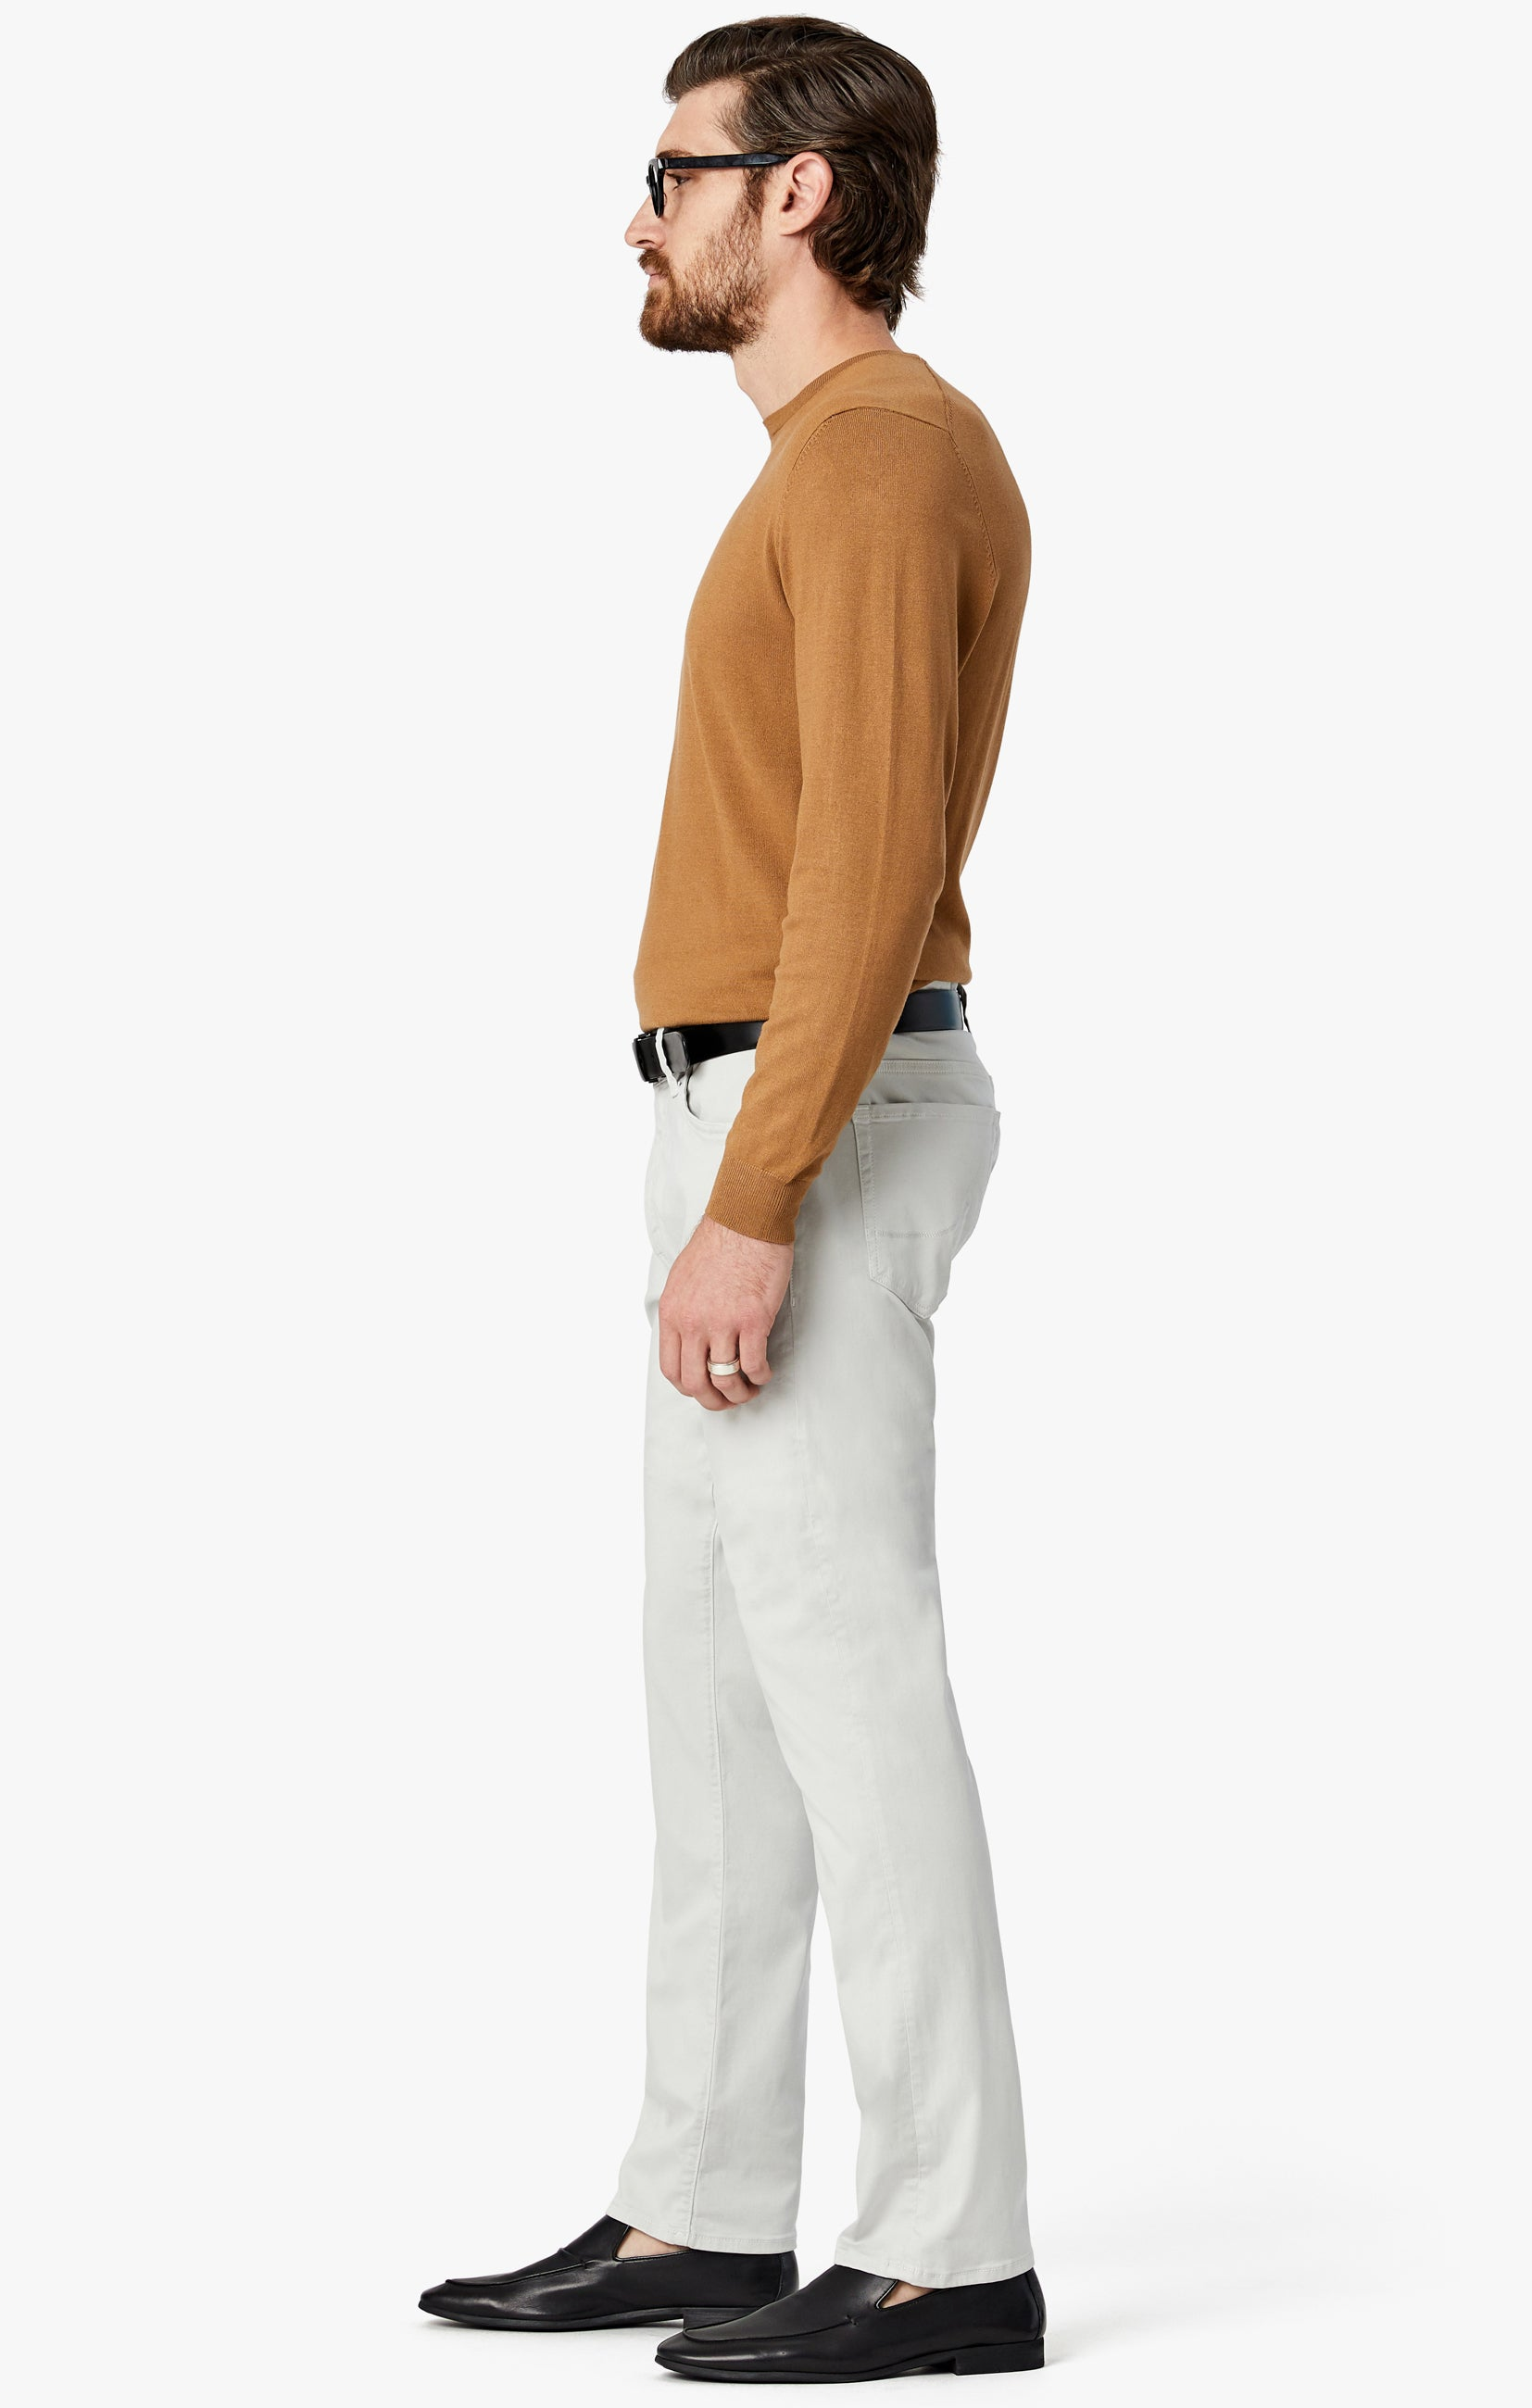 Courage Straight Leg Jeans in Bone Twill Image 4